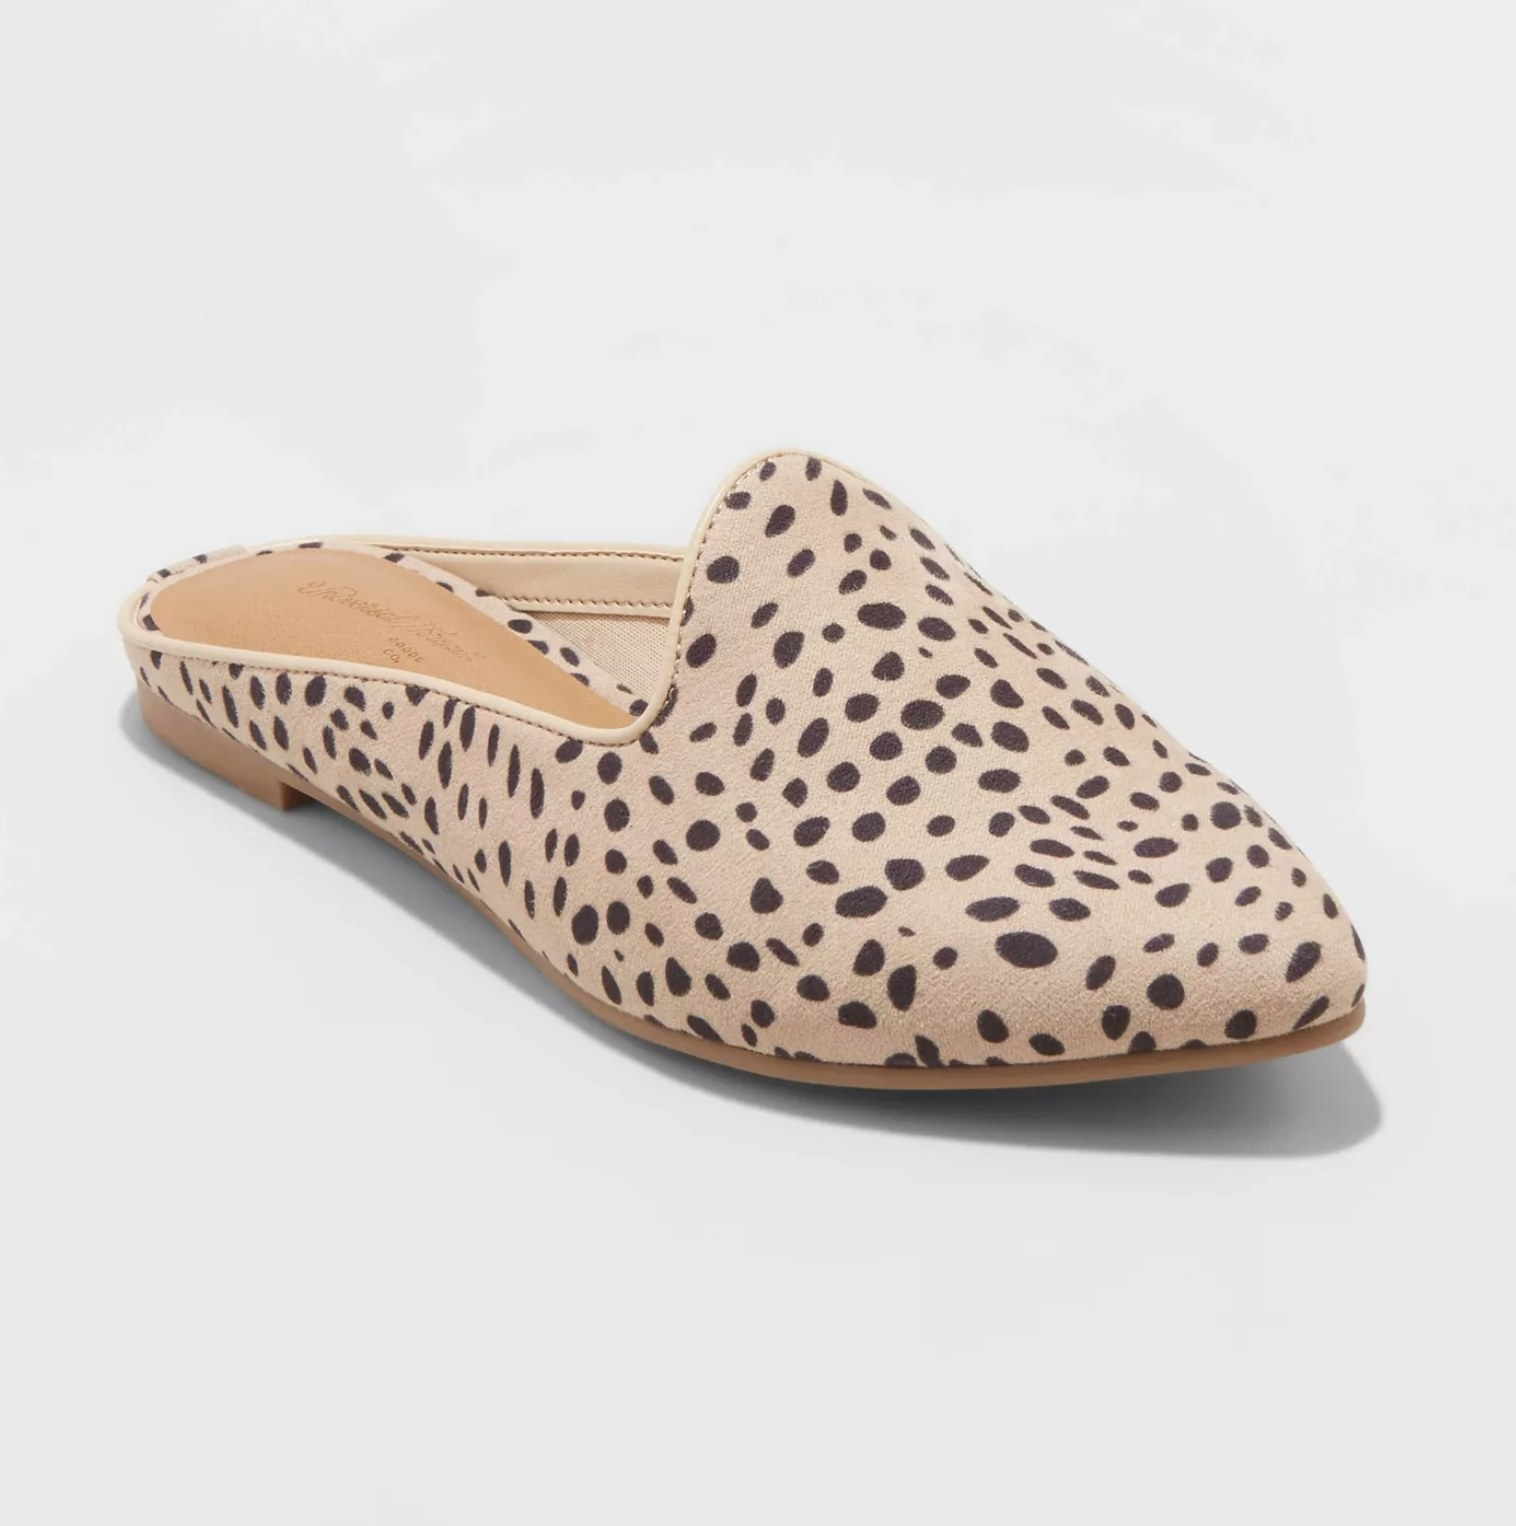 The shoes in brown/leopard